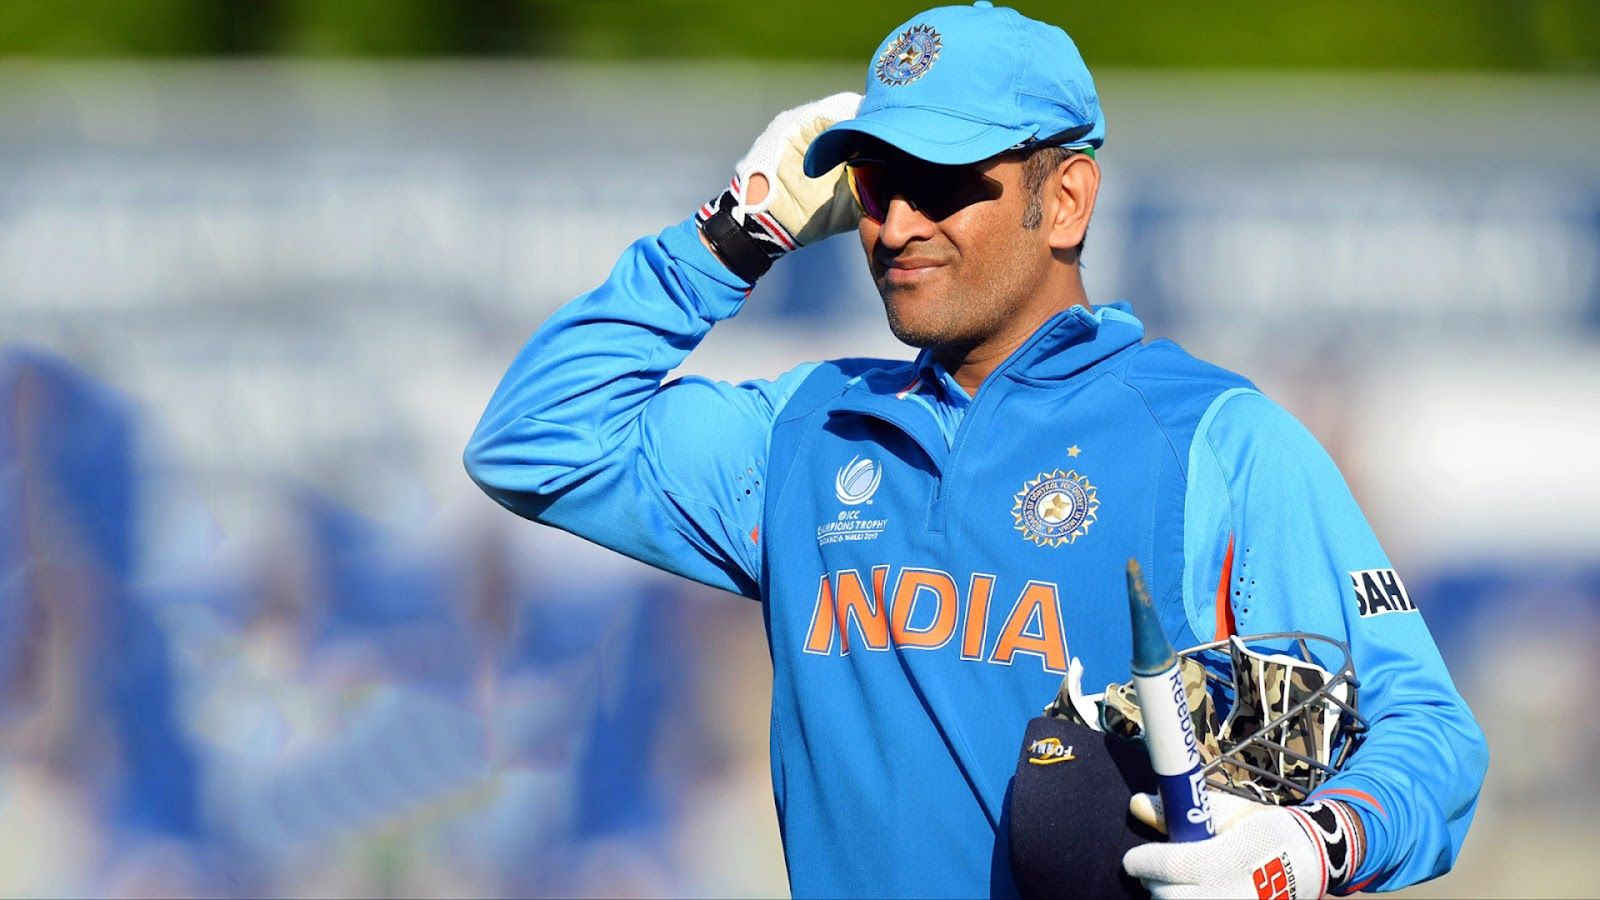 M s dhoni movie images download in tamilrockers lv 2020